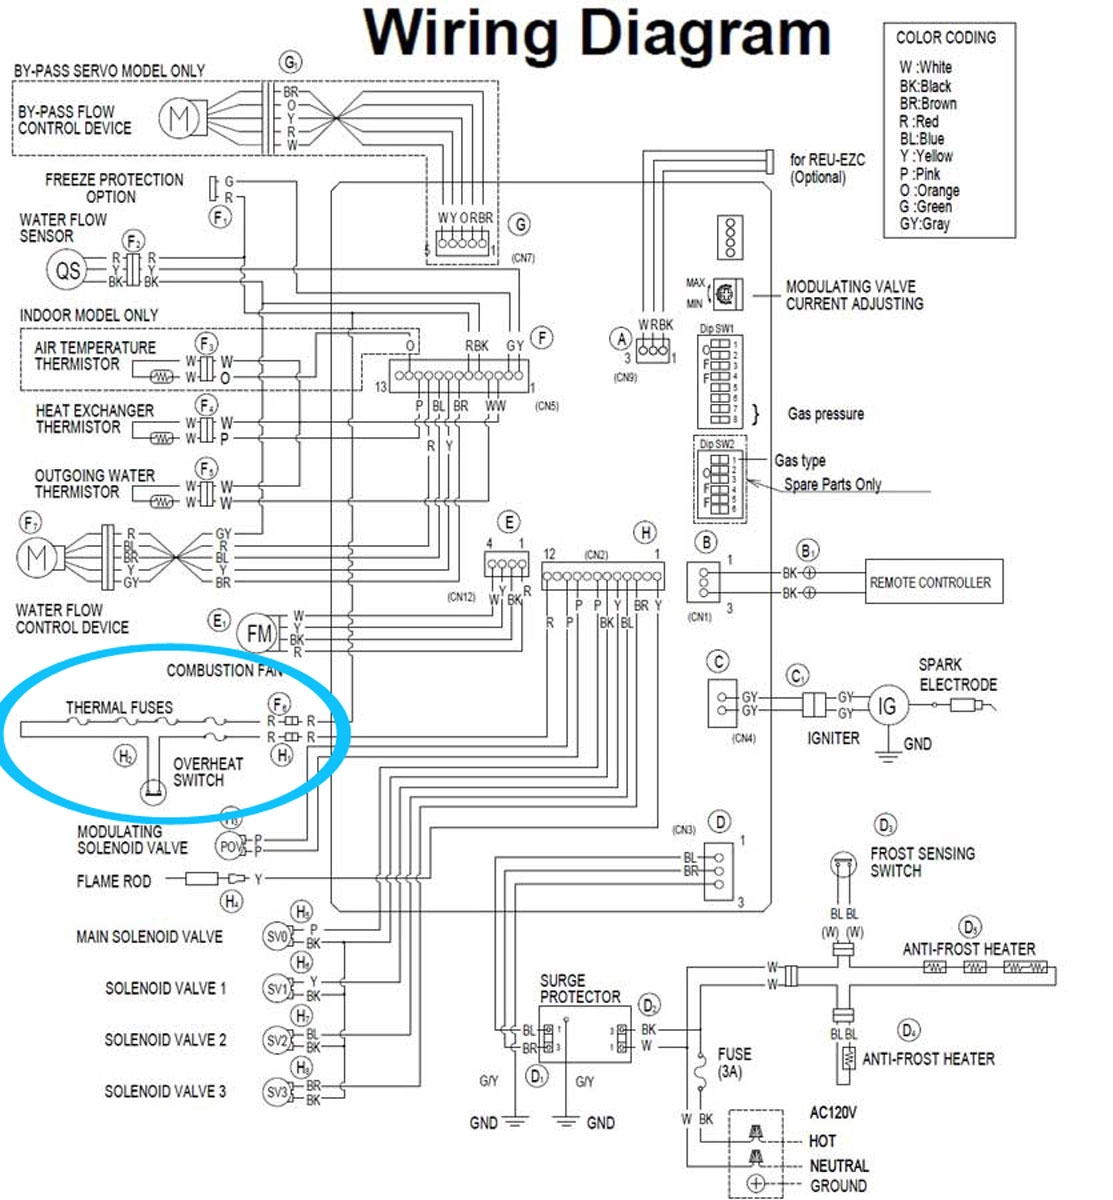 rheem rte 13 wiring diagram Collection-Check the electric troubleshoot from 2008 pdf 16-i